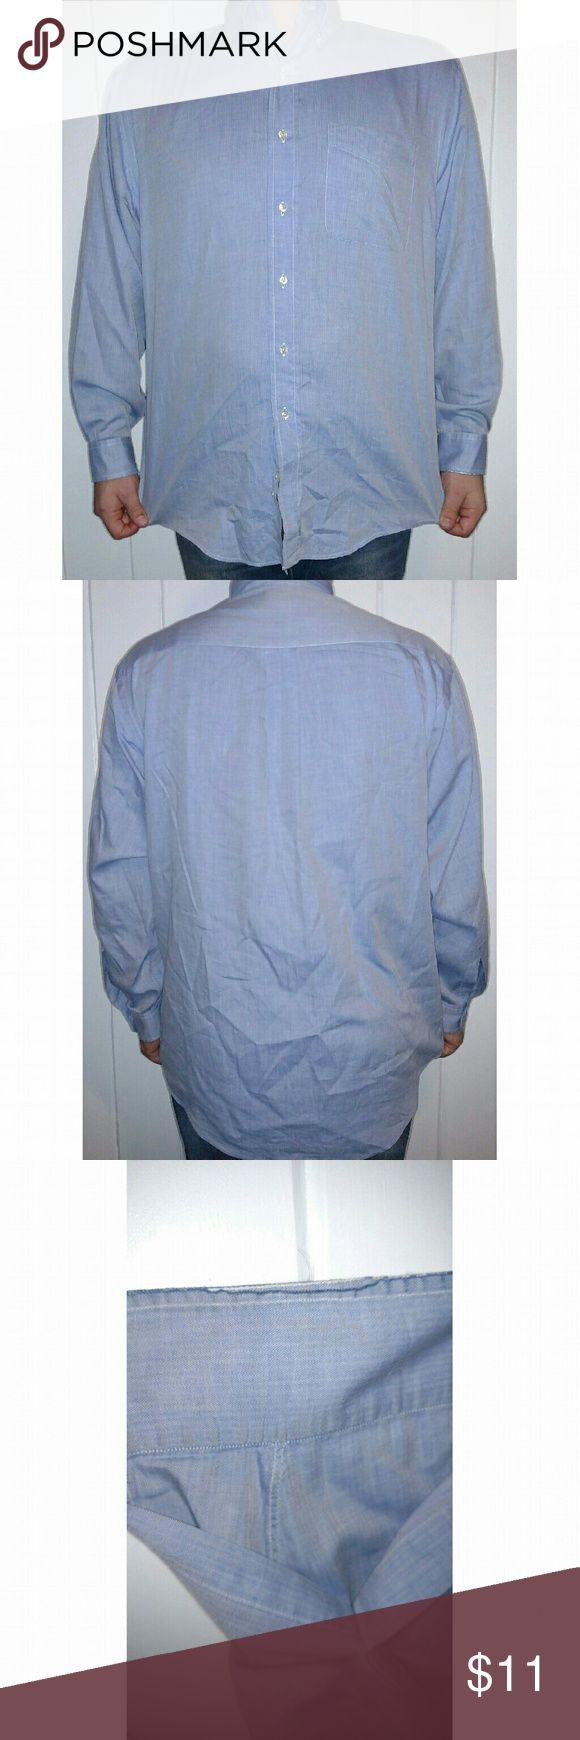 Brooks Brothers Relaxed Fit Light Blue Dress Shirt This size Medium dress shirt is light blue, 100% cotton, relaxed fit with standard cuffs and buttons on the collar. The cuffs show some slight wear as shown in picture but otherwise the shirt is in excellent condition.   Fast shipping! Brooks Brothers Shirts Dress Shirts